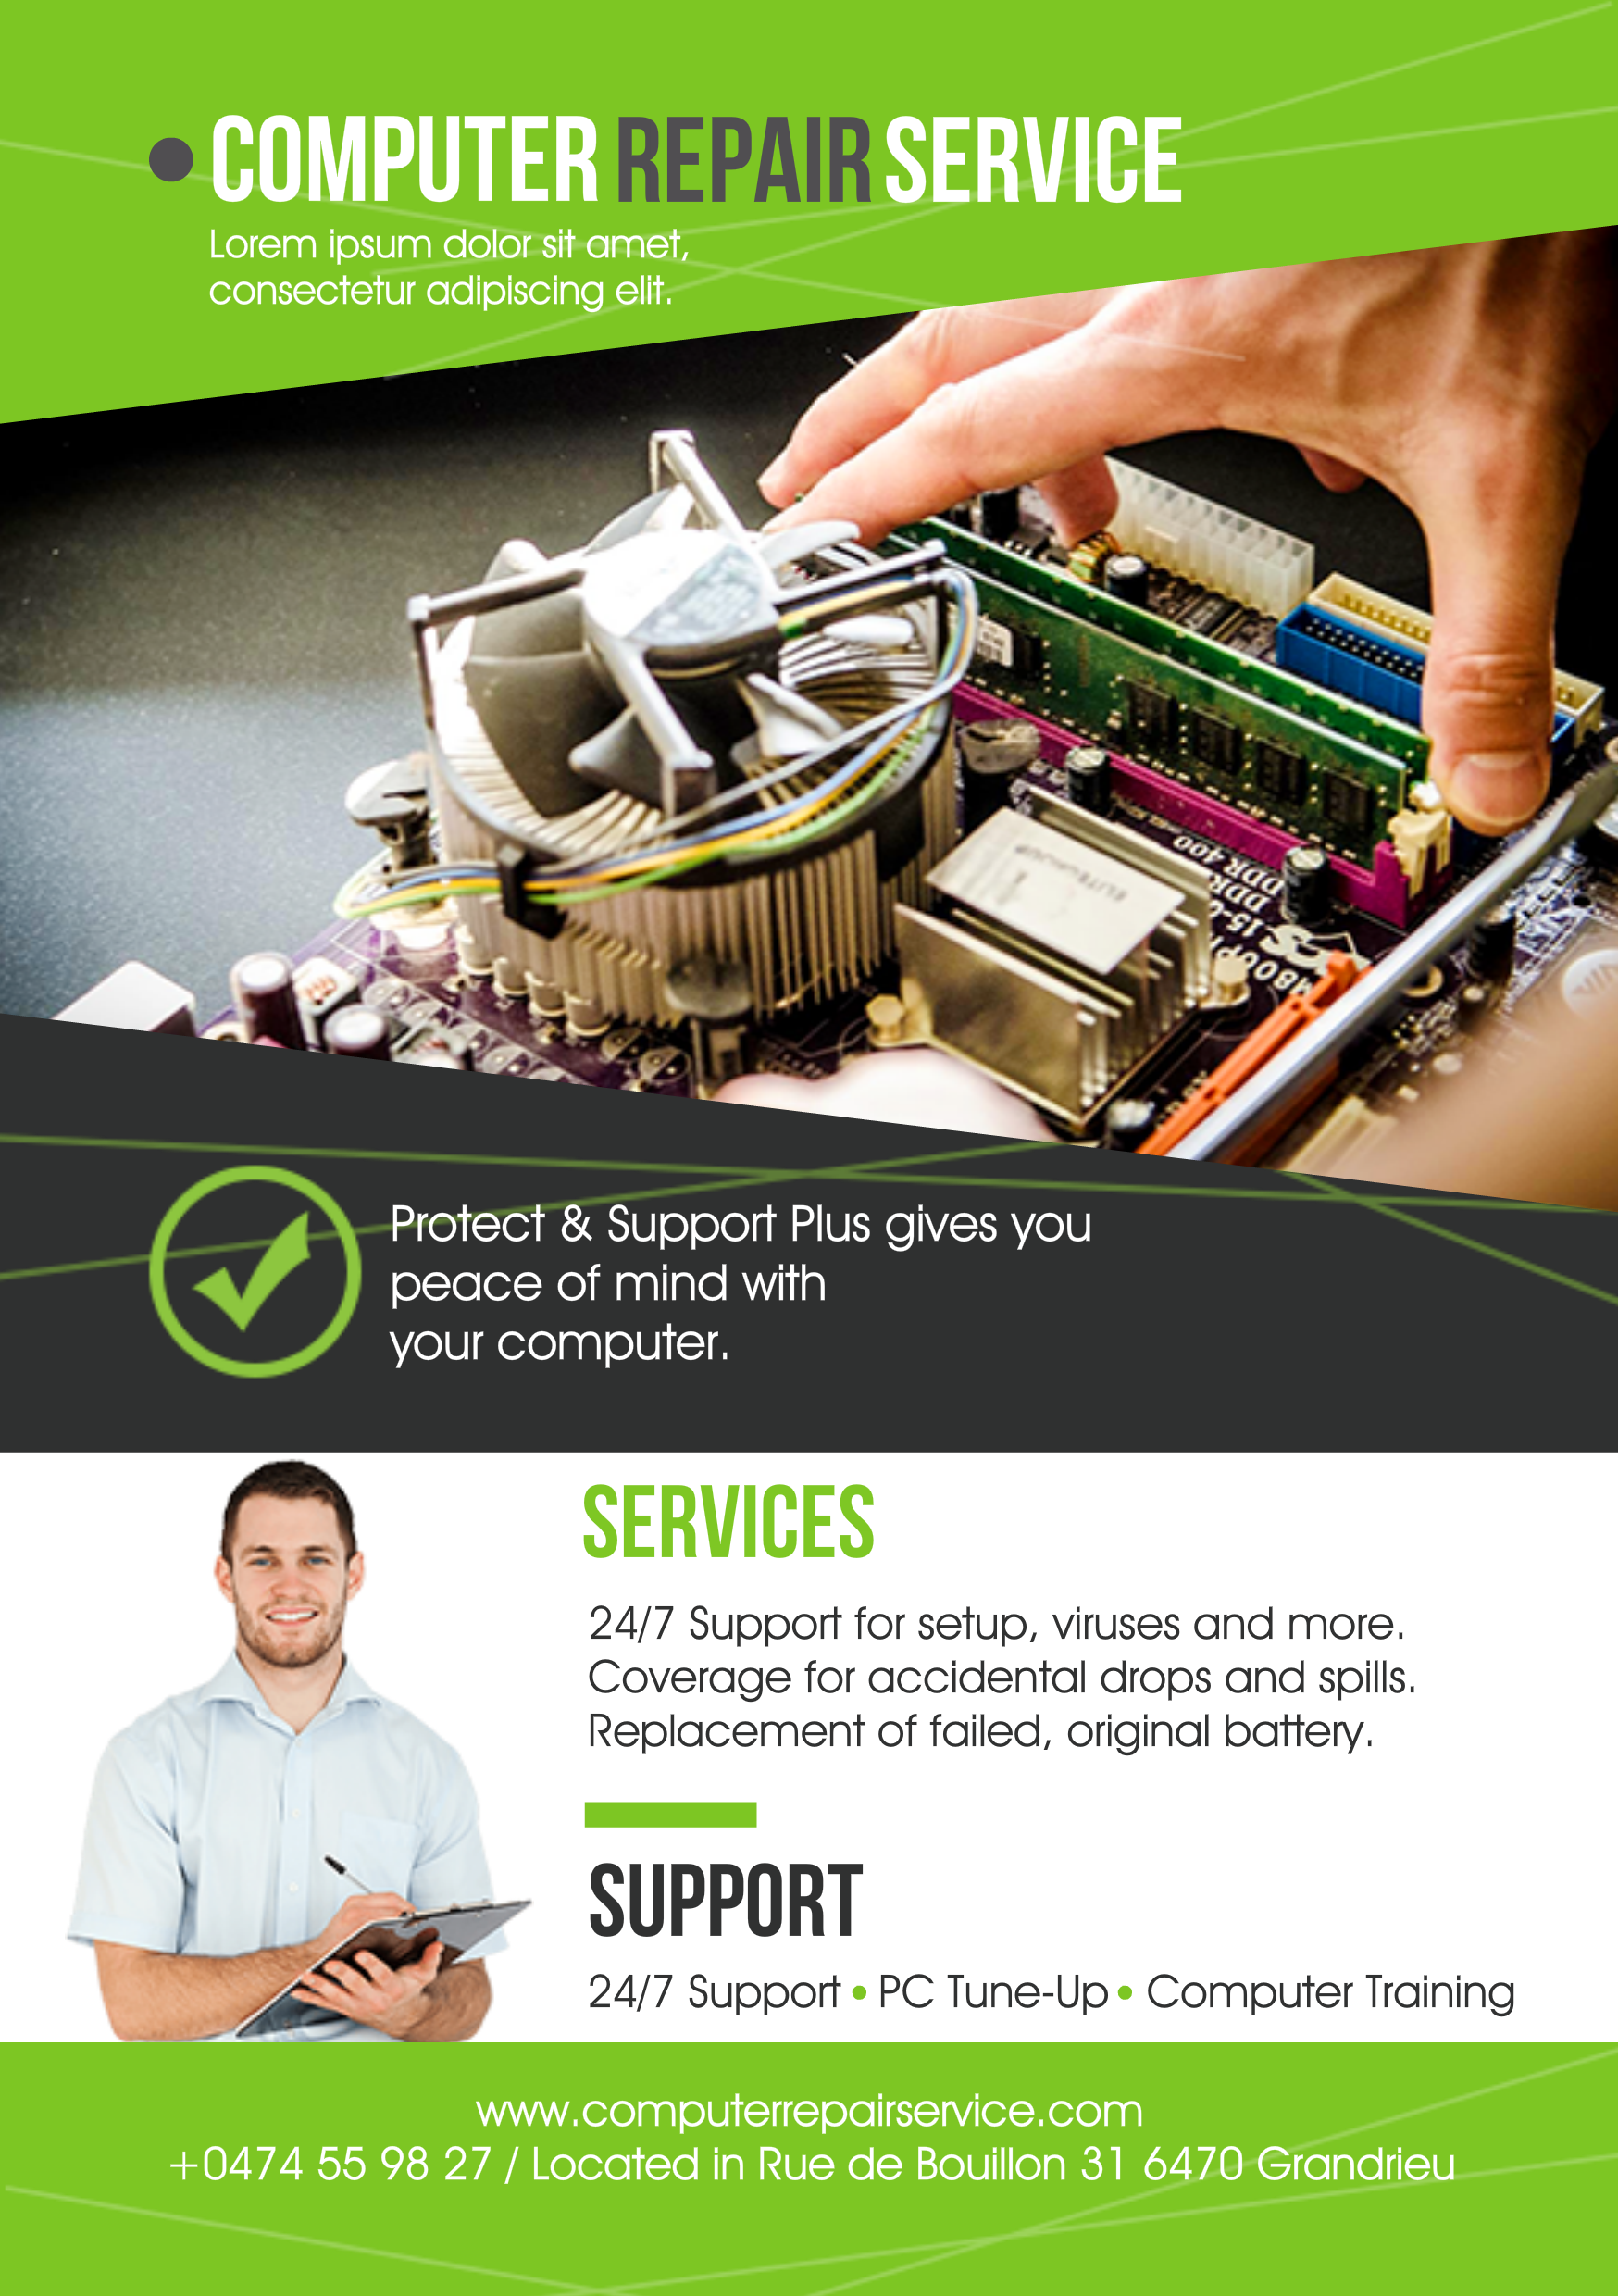 Computer repair A5 promotional flyerpremadevideosa5 – Promotional Flyer Template